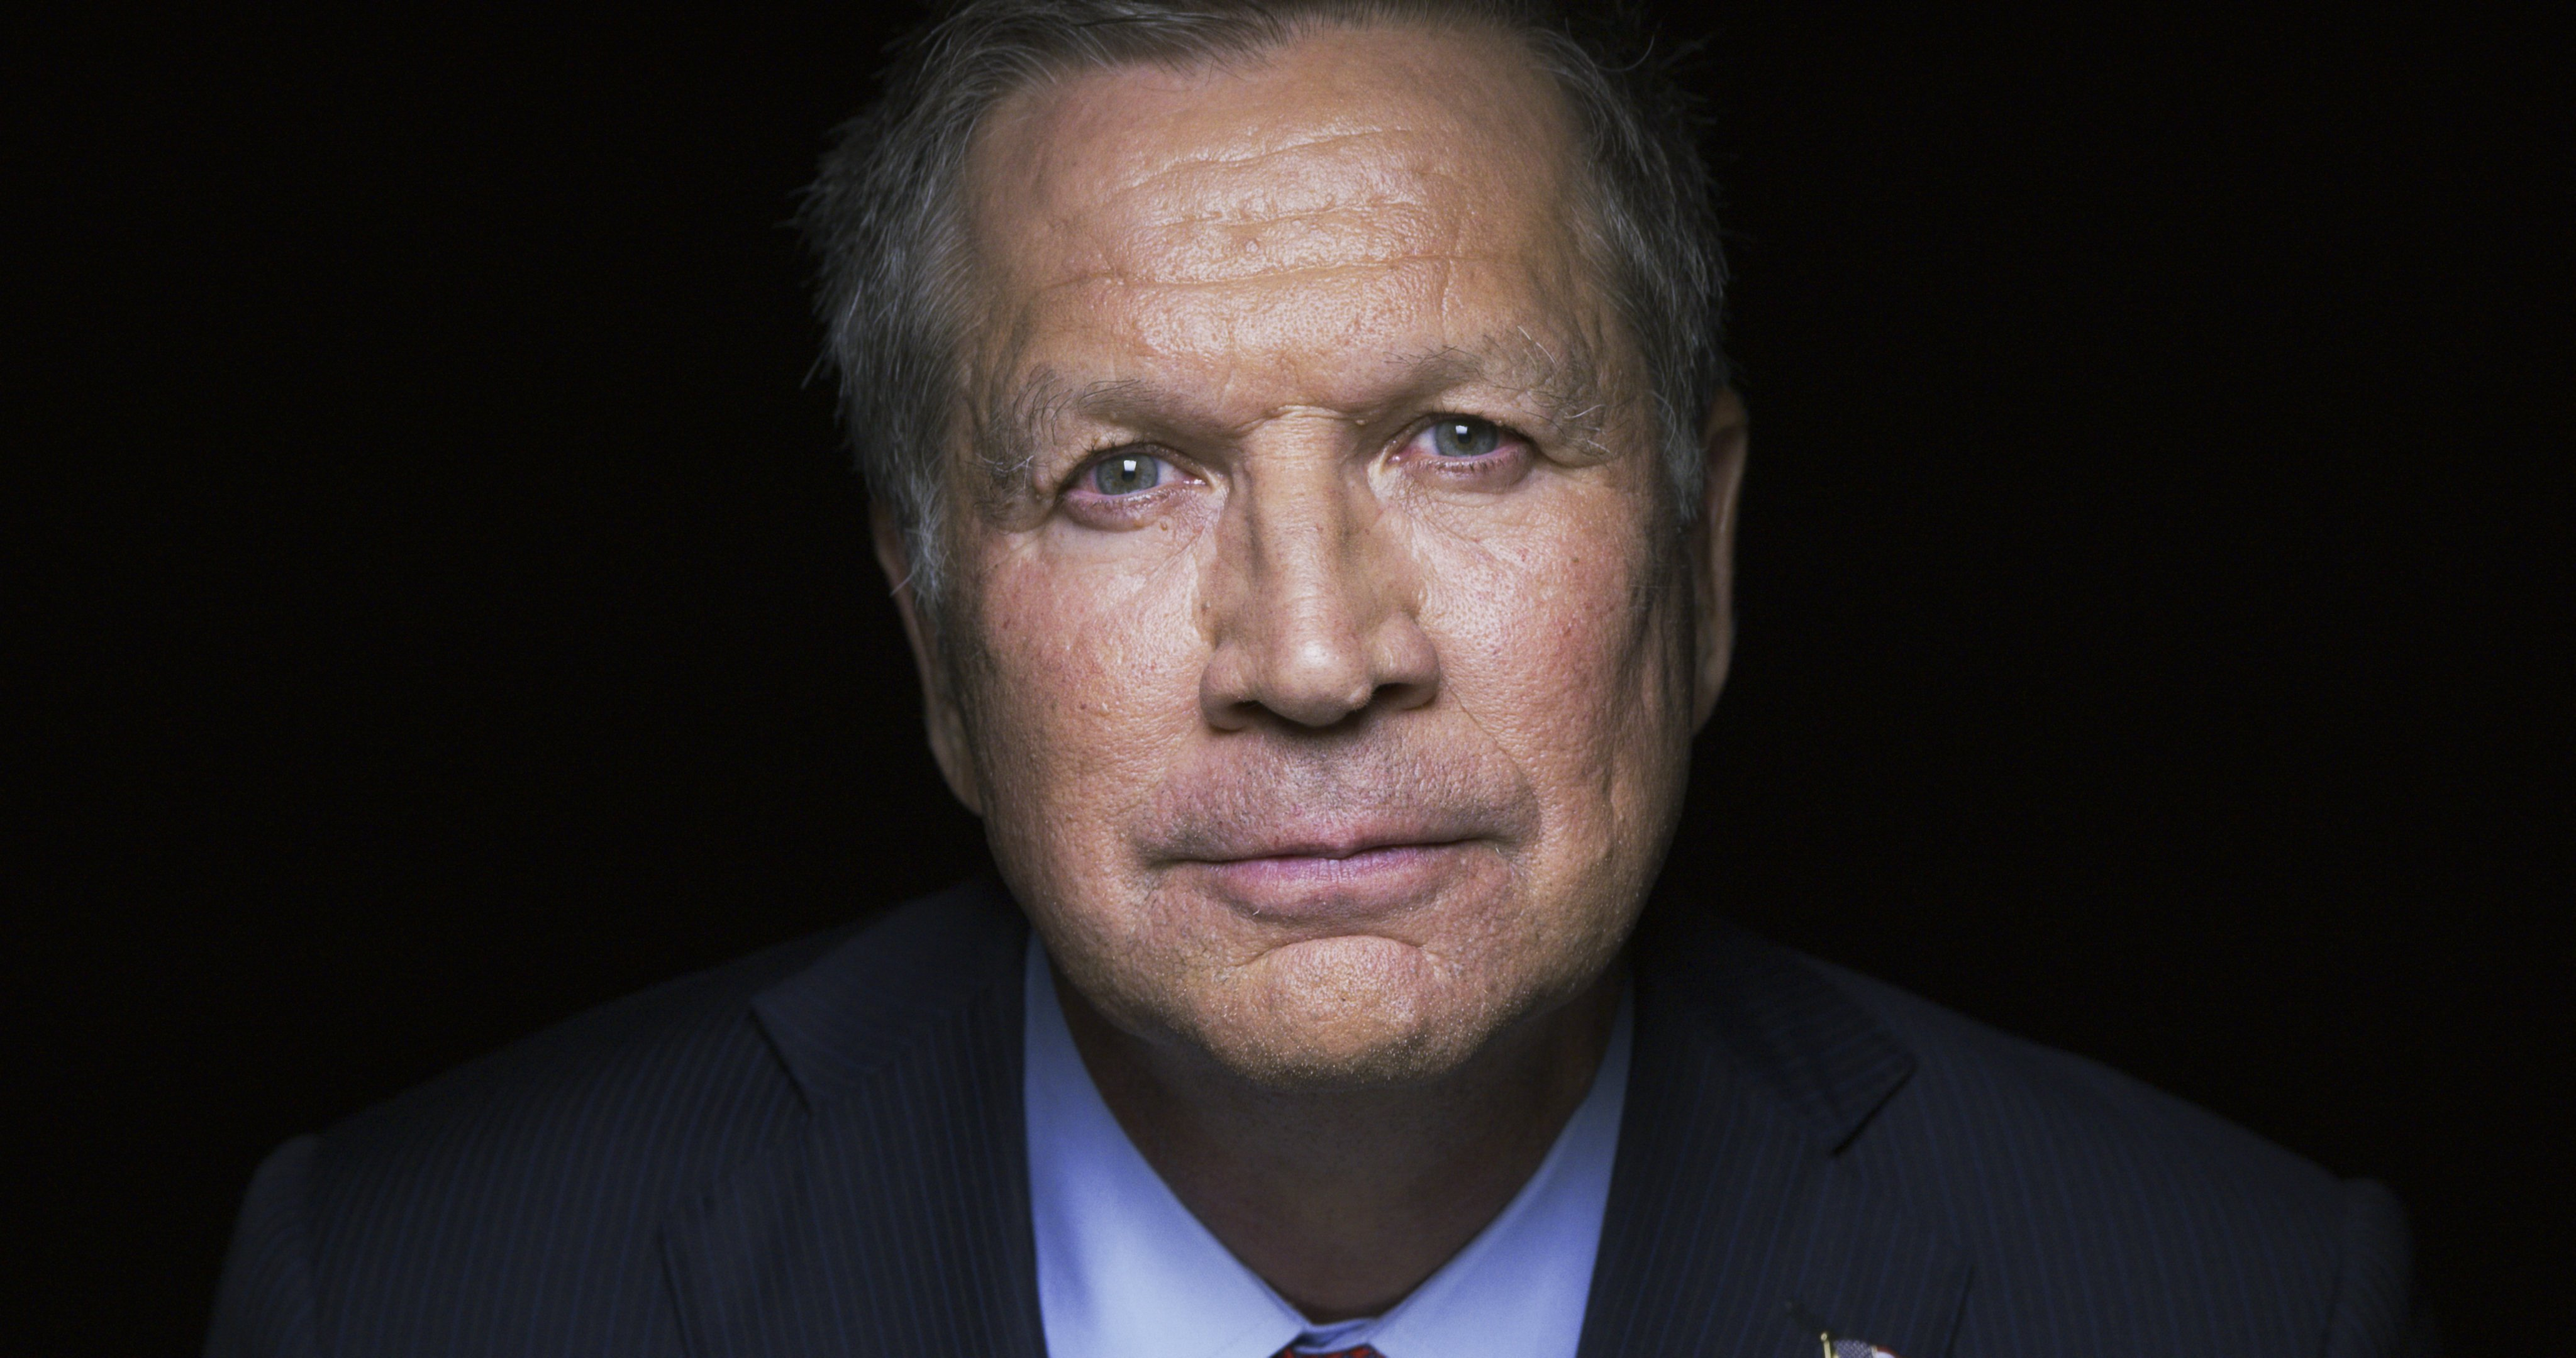 John Kasich Votes Republican, But Not for Trump